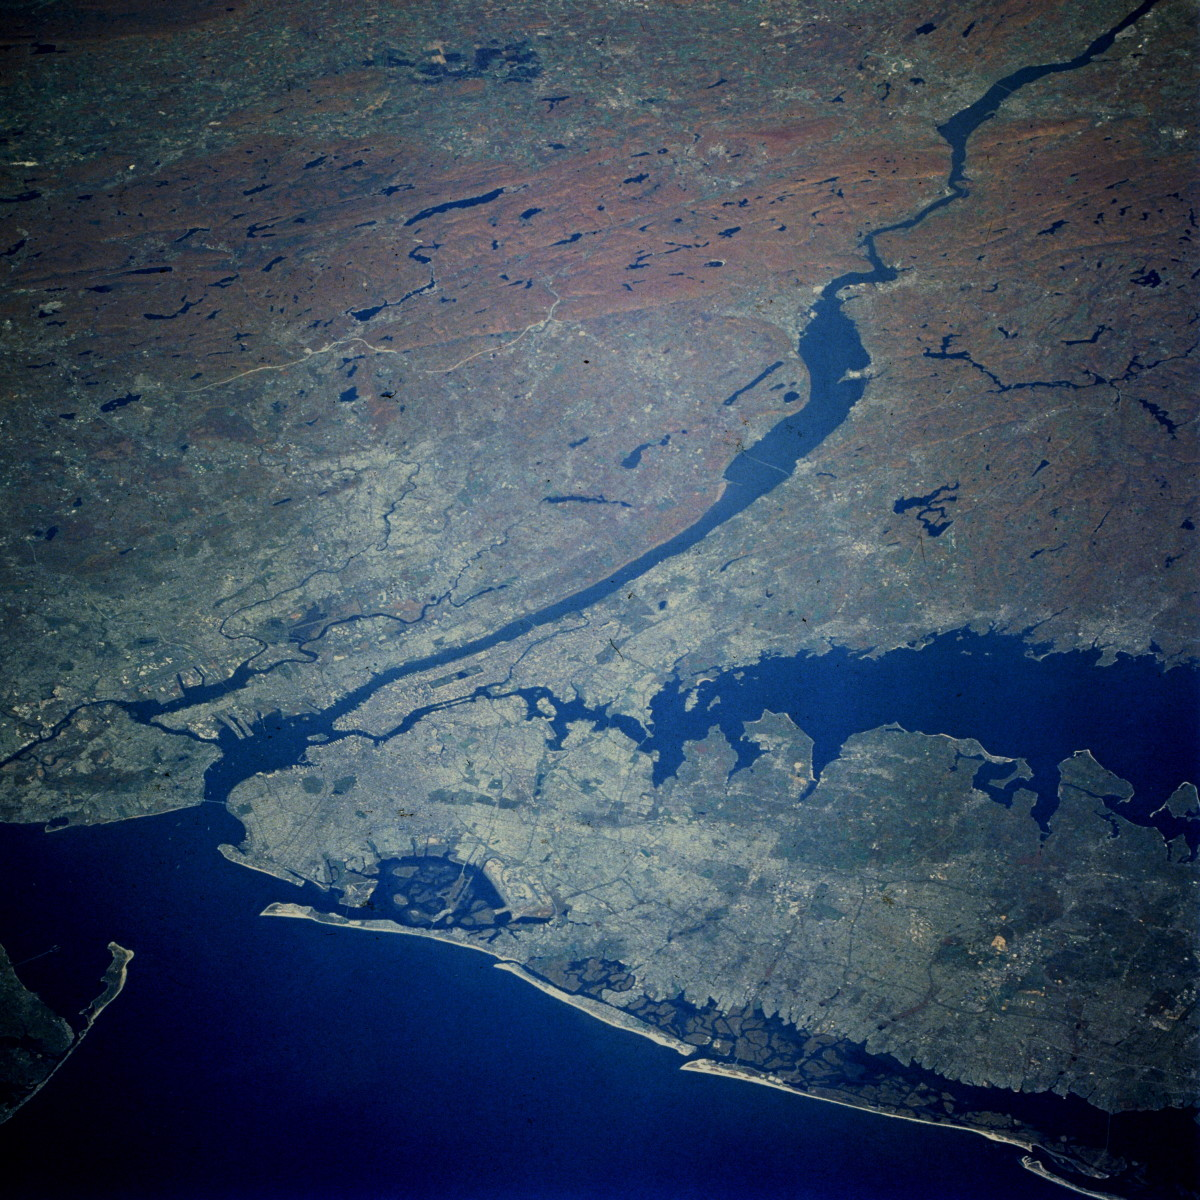 Snapshot of New York in Autumn as taken by the Shuttle Columbia